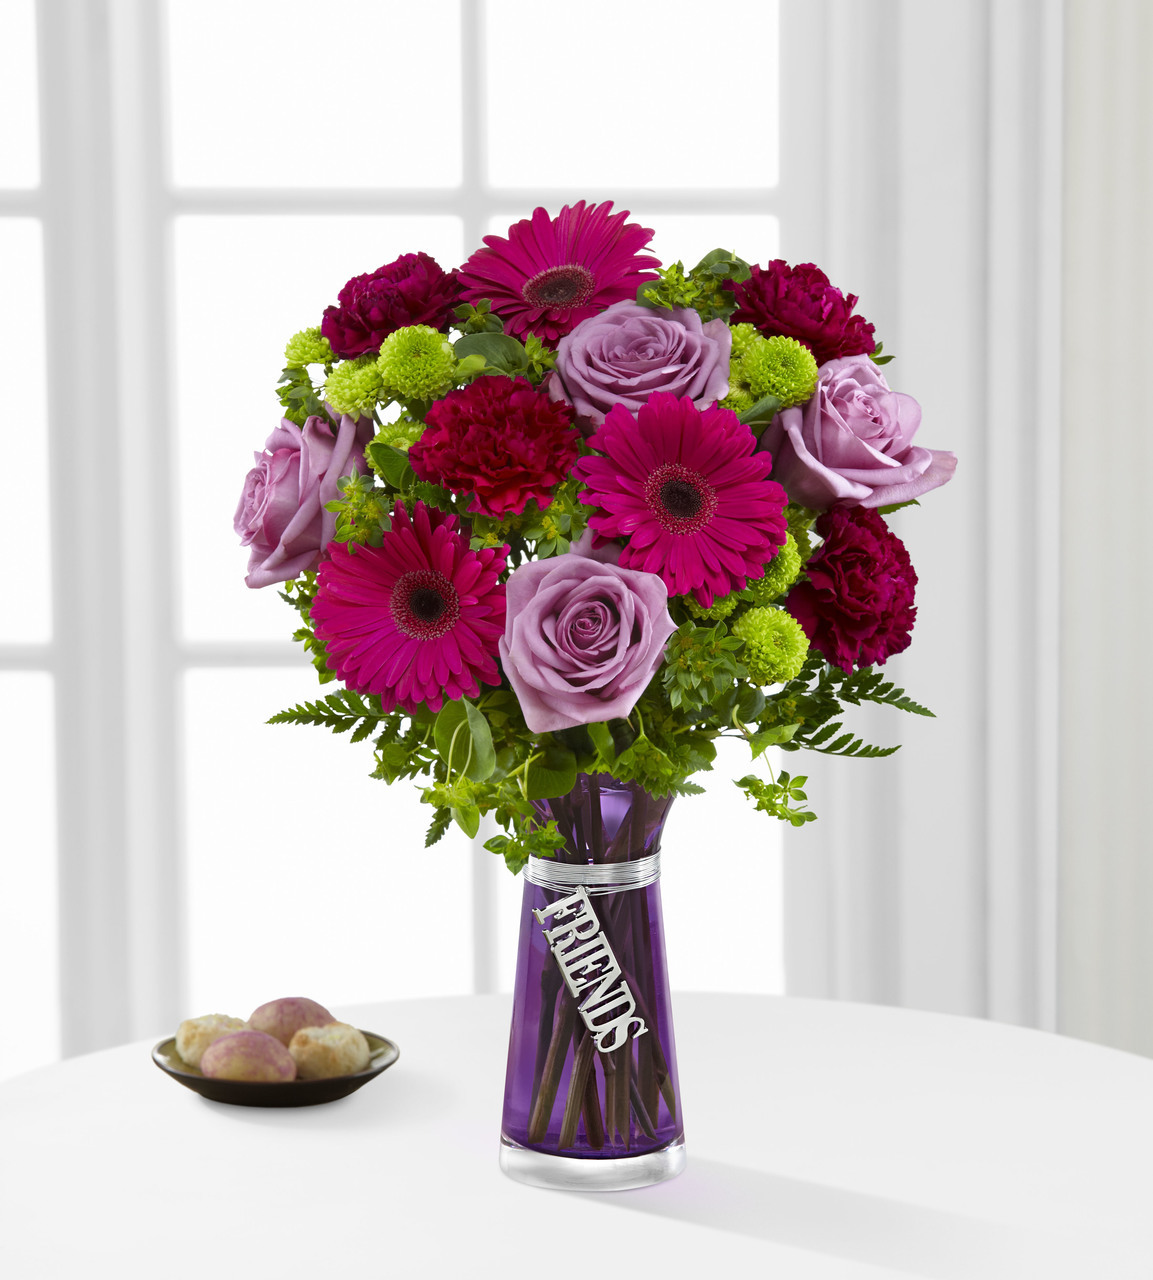 Friends bouquet simi valley flower delivery izmirmasajfo